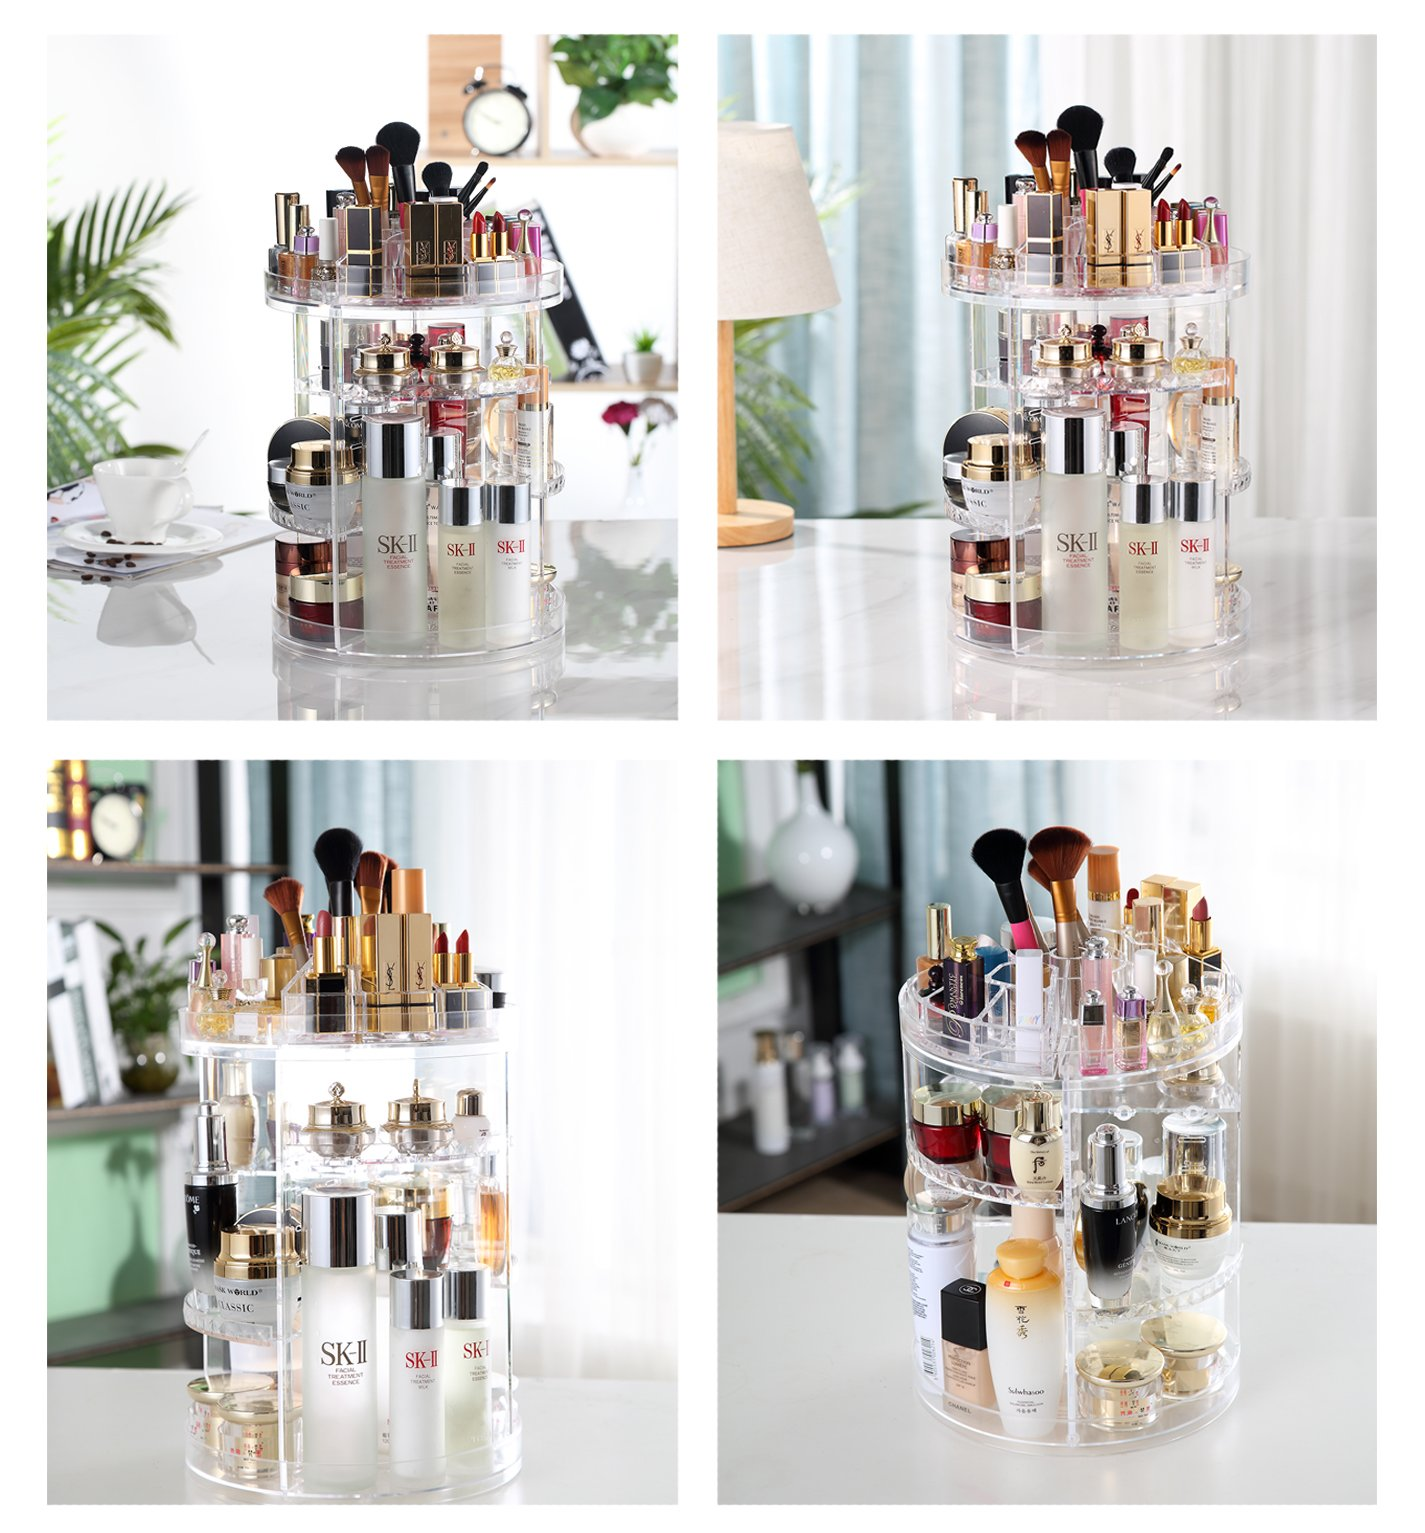 Adjustable 360° Rotating Makeup Organizer Holder, Transparent Spinning Cosmetic Storage Tower With Large Capacity for Bathroom Tray / Bedroom Dresser by Boxalls